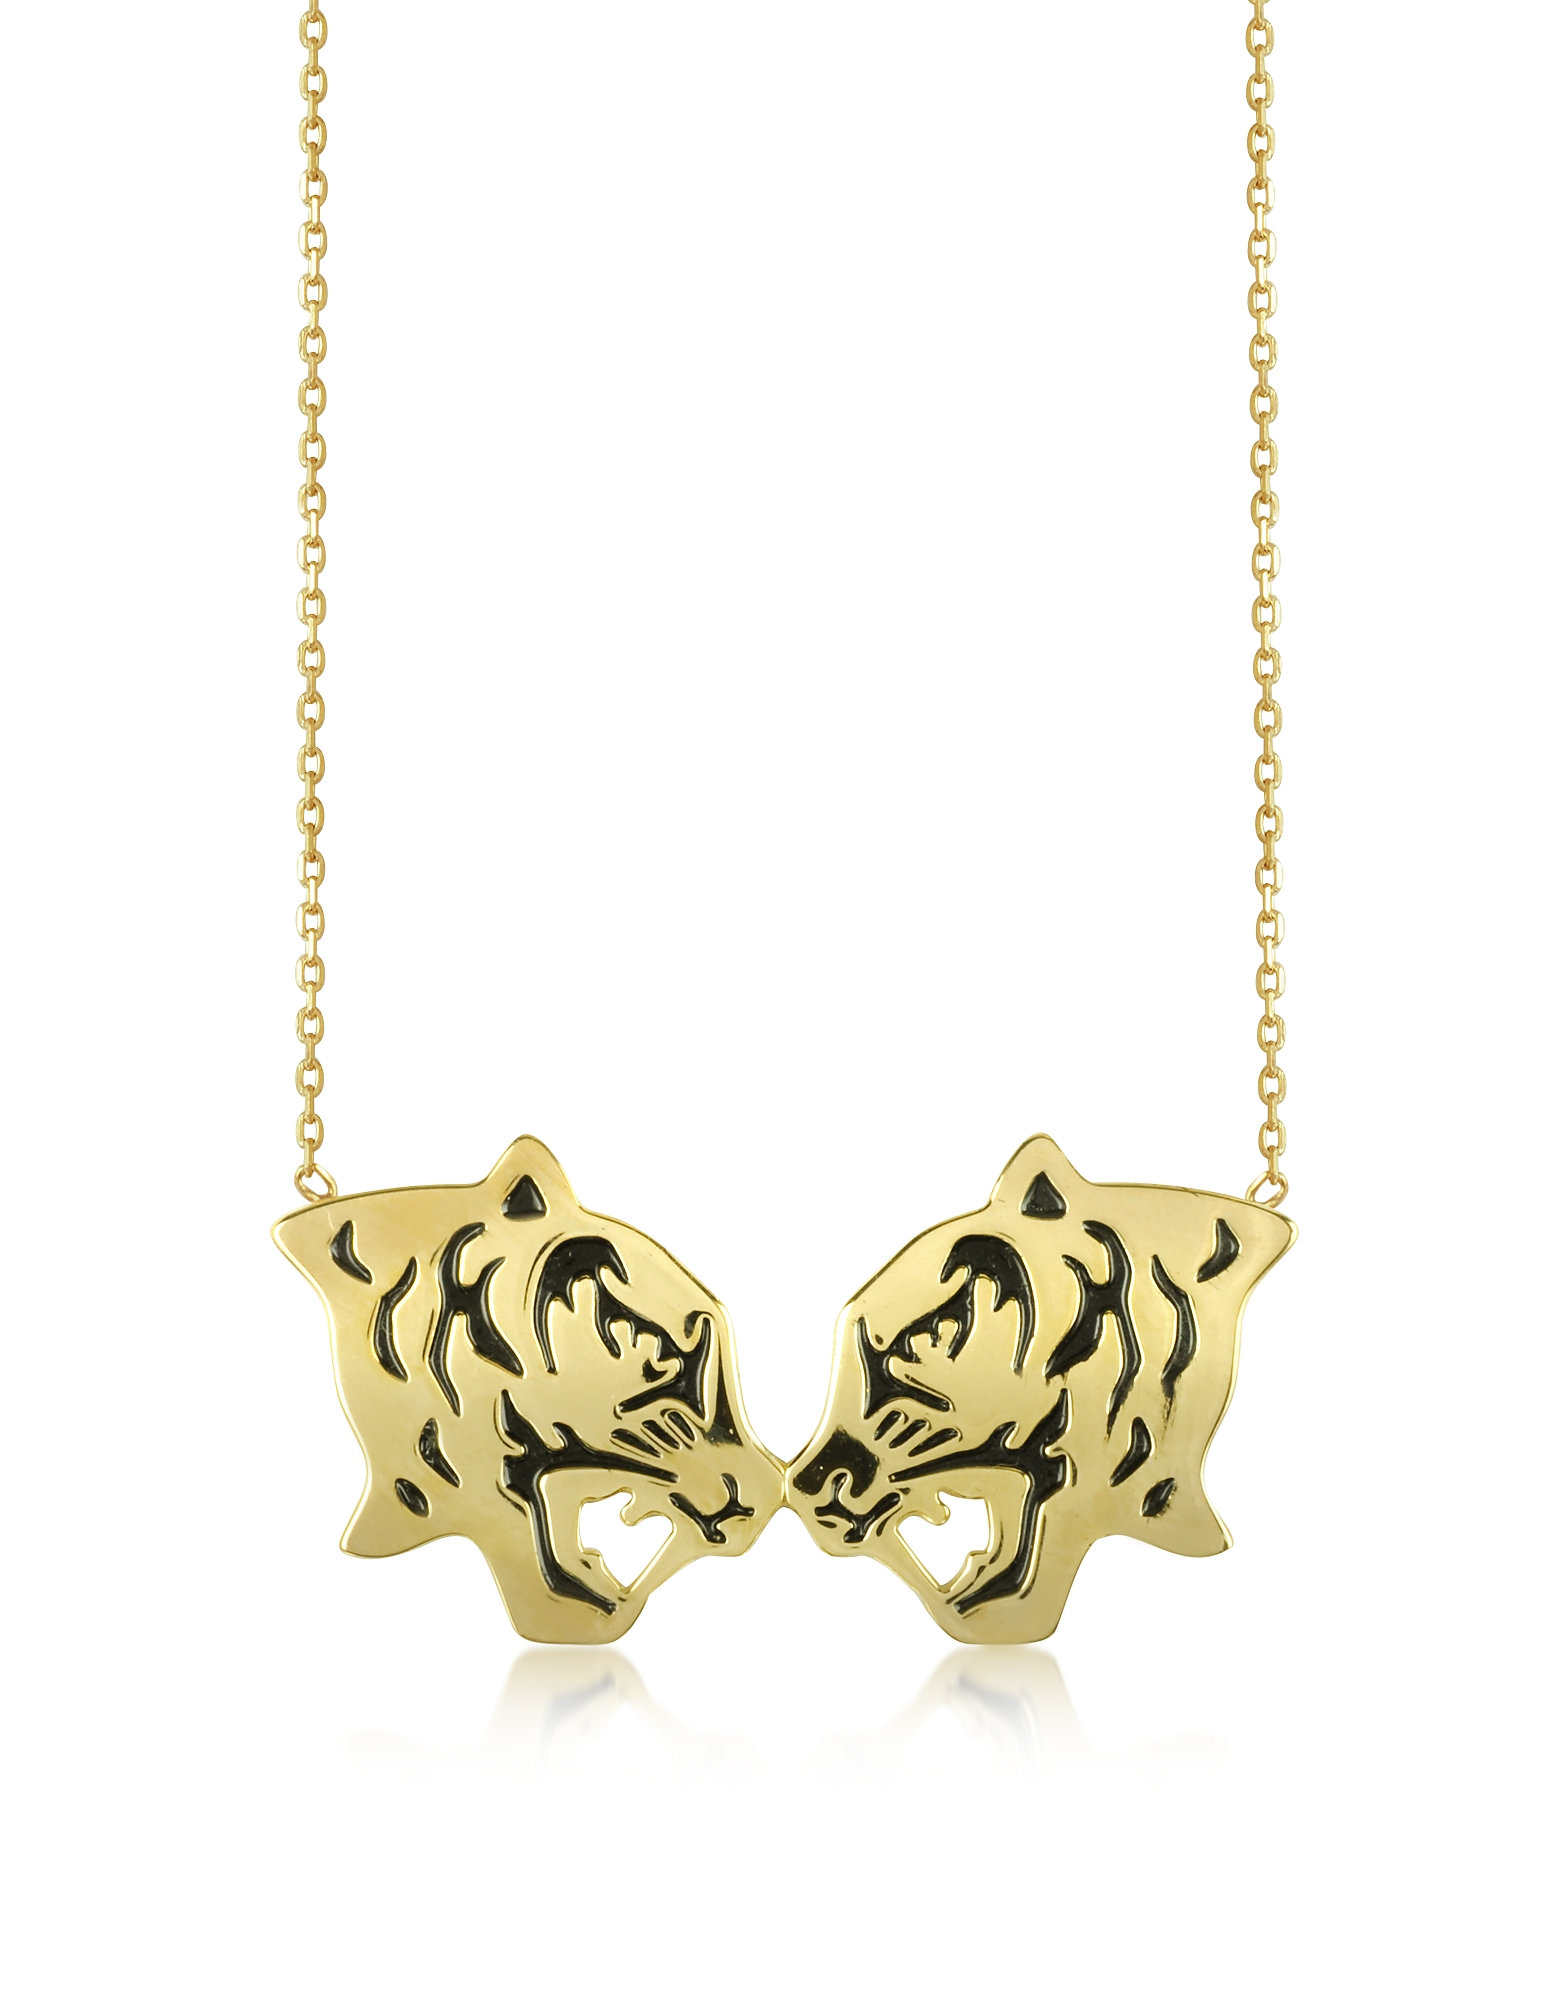 Kenzo Necklaces, Gold Plated and Black Lacquer Fighting Tiger Necklace